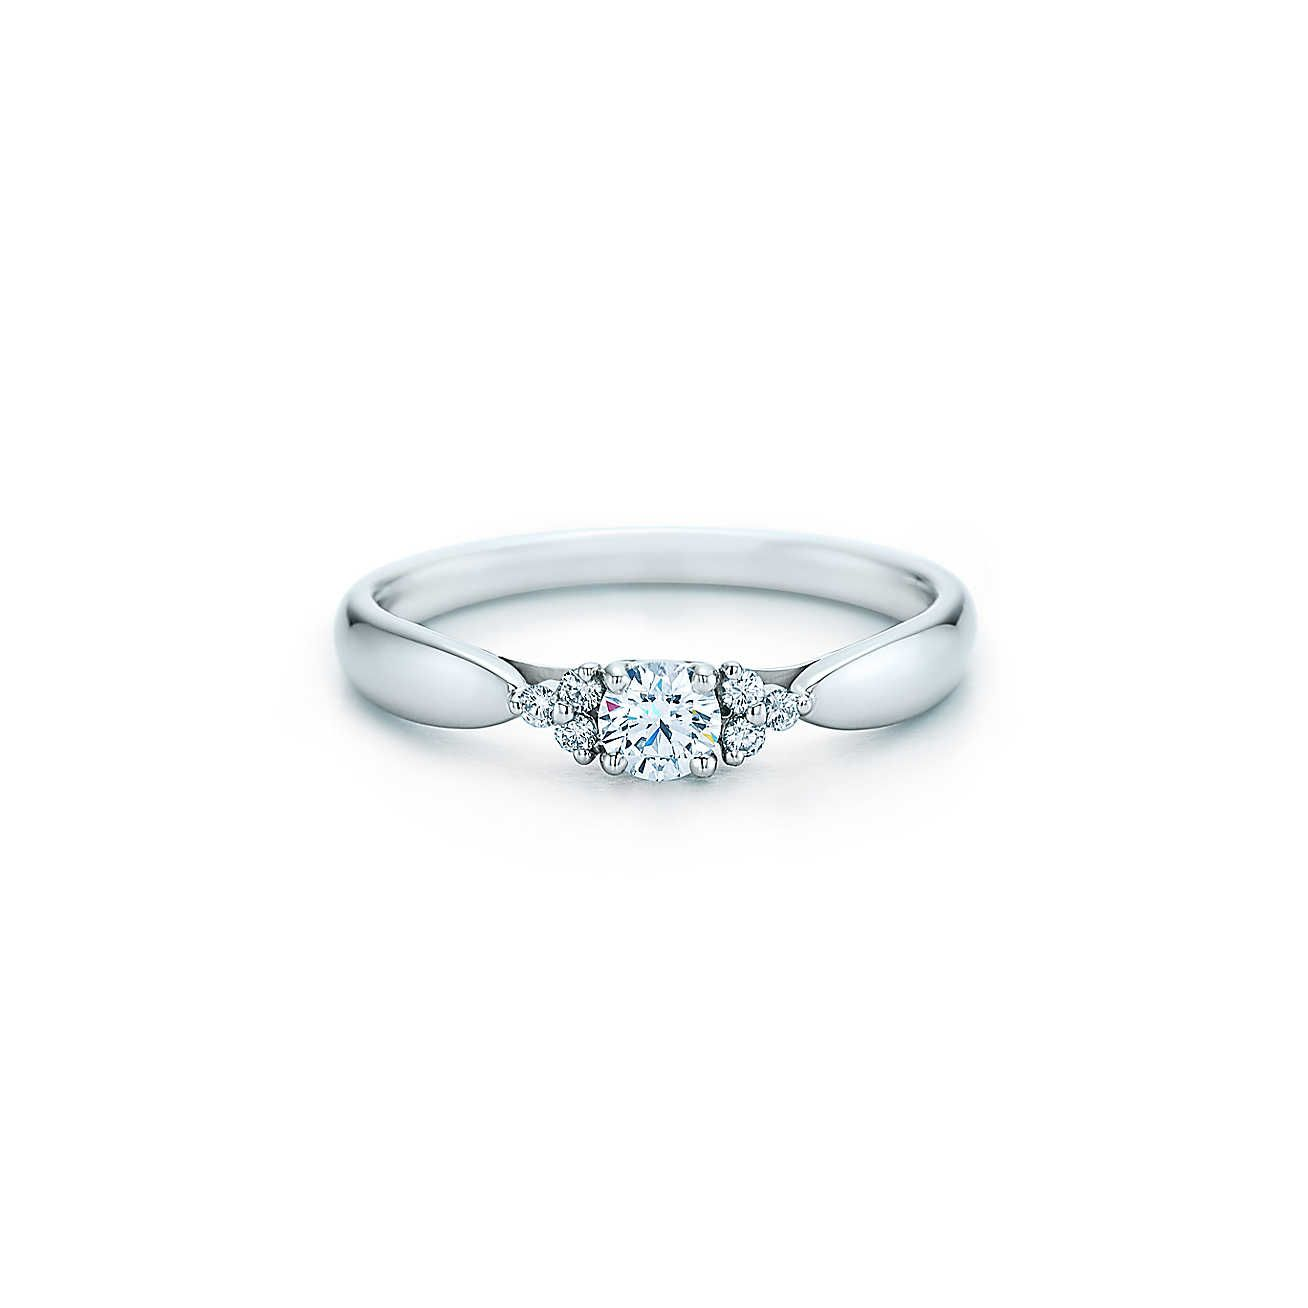 Tiffany harmony diamond ring with side stones silver jewelry